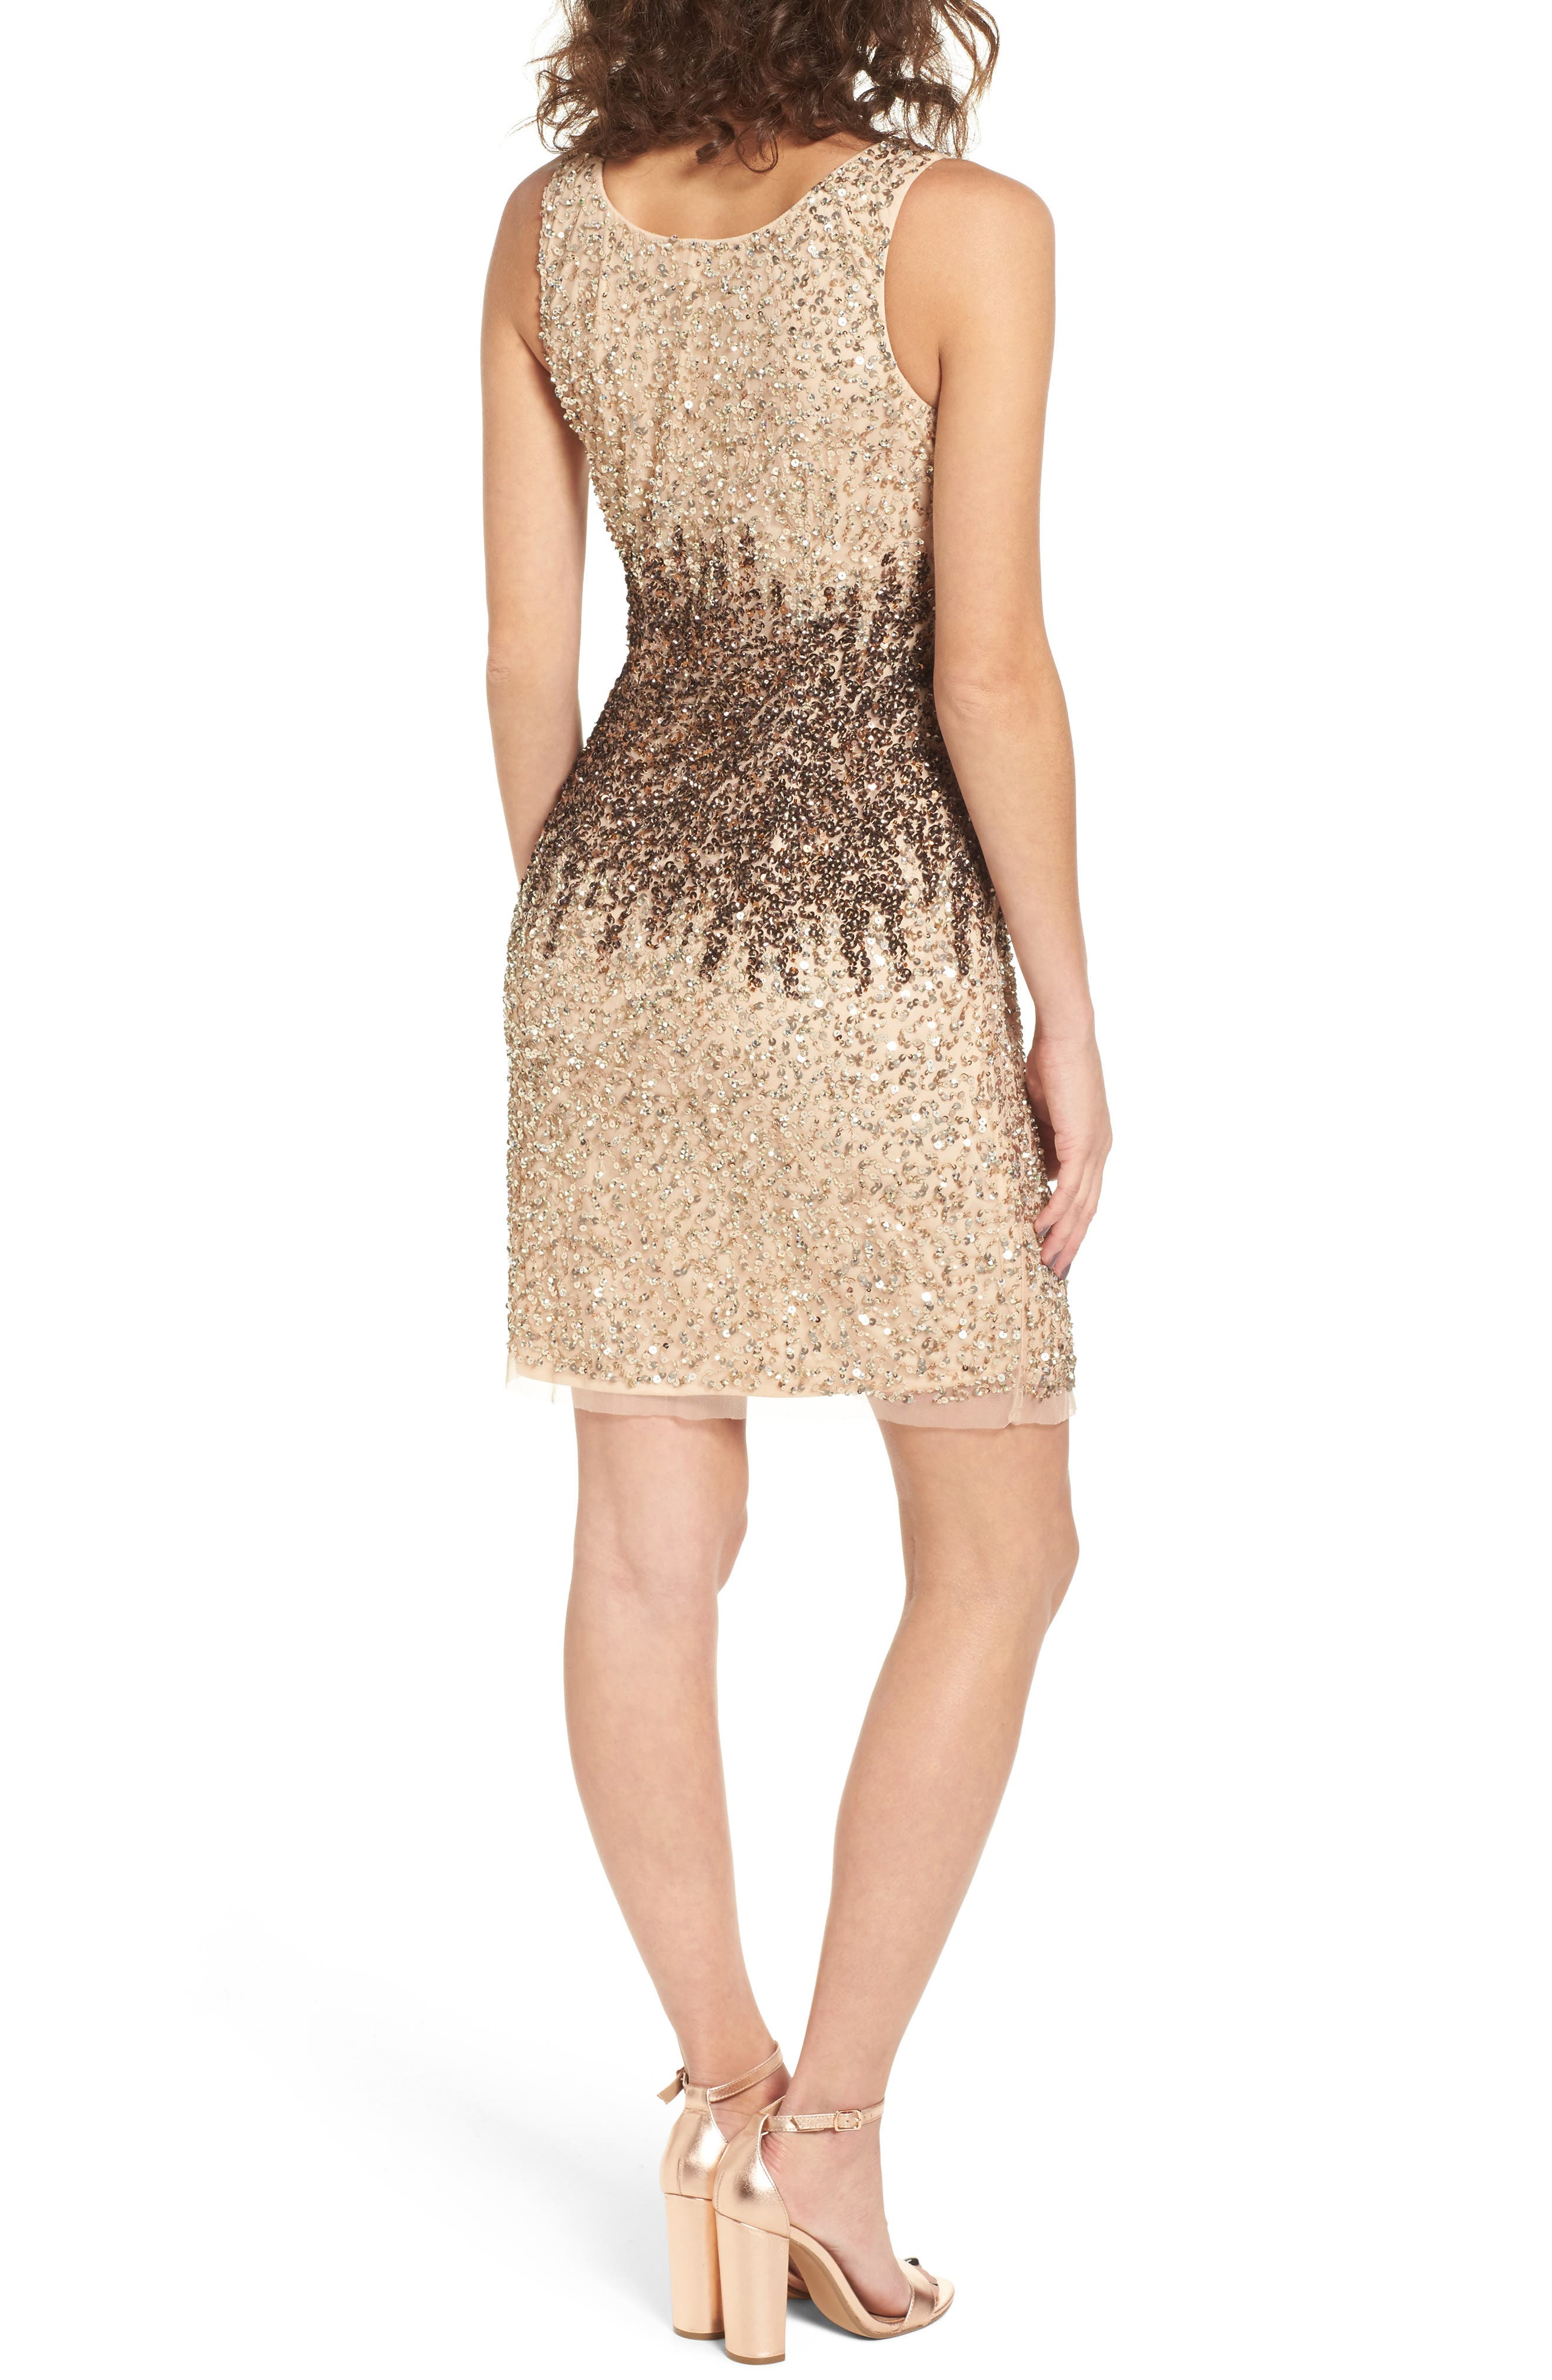 Sequins and Champagne Dress,                             Alternate thumbnail 2, color,                             280